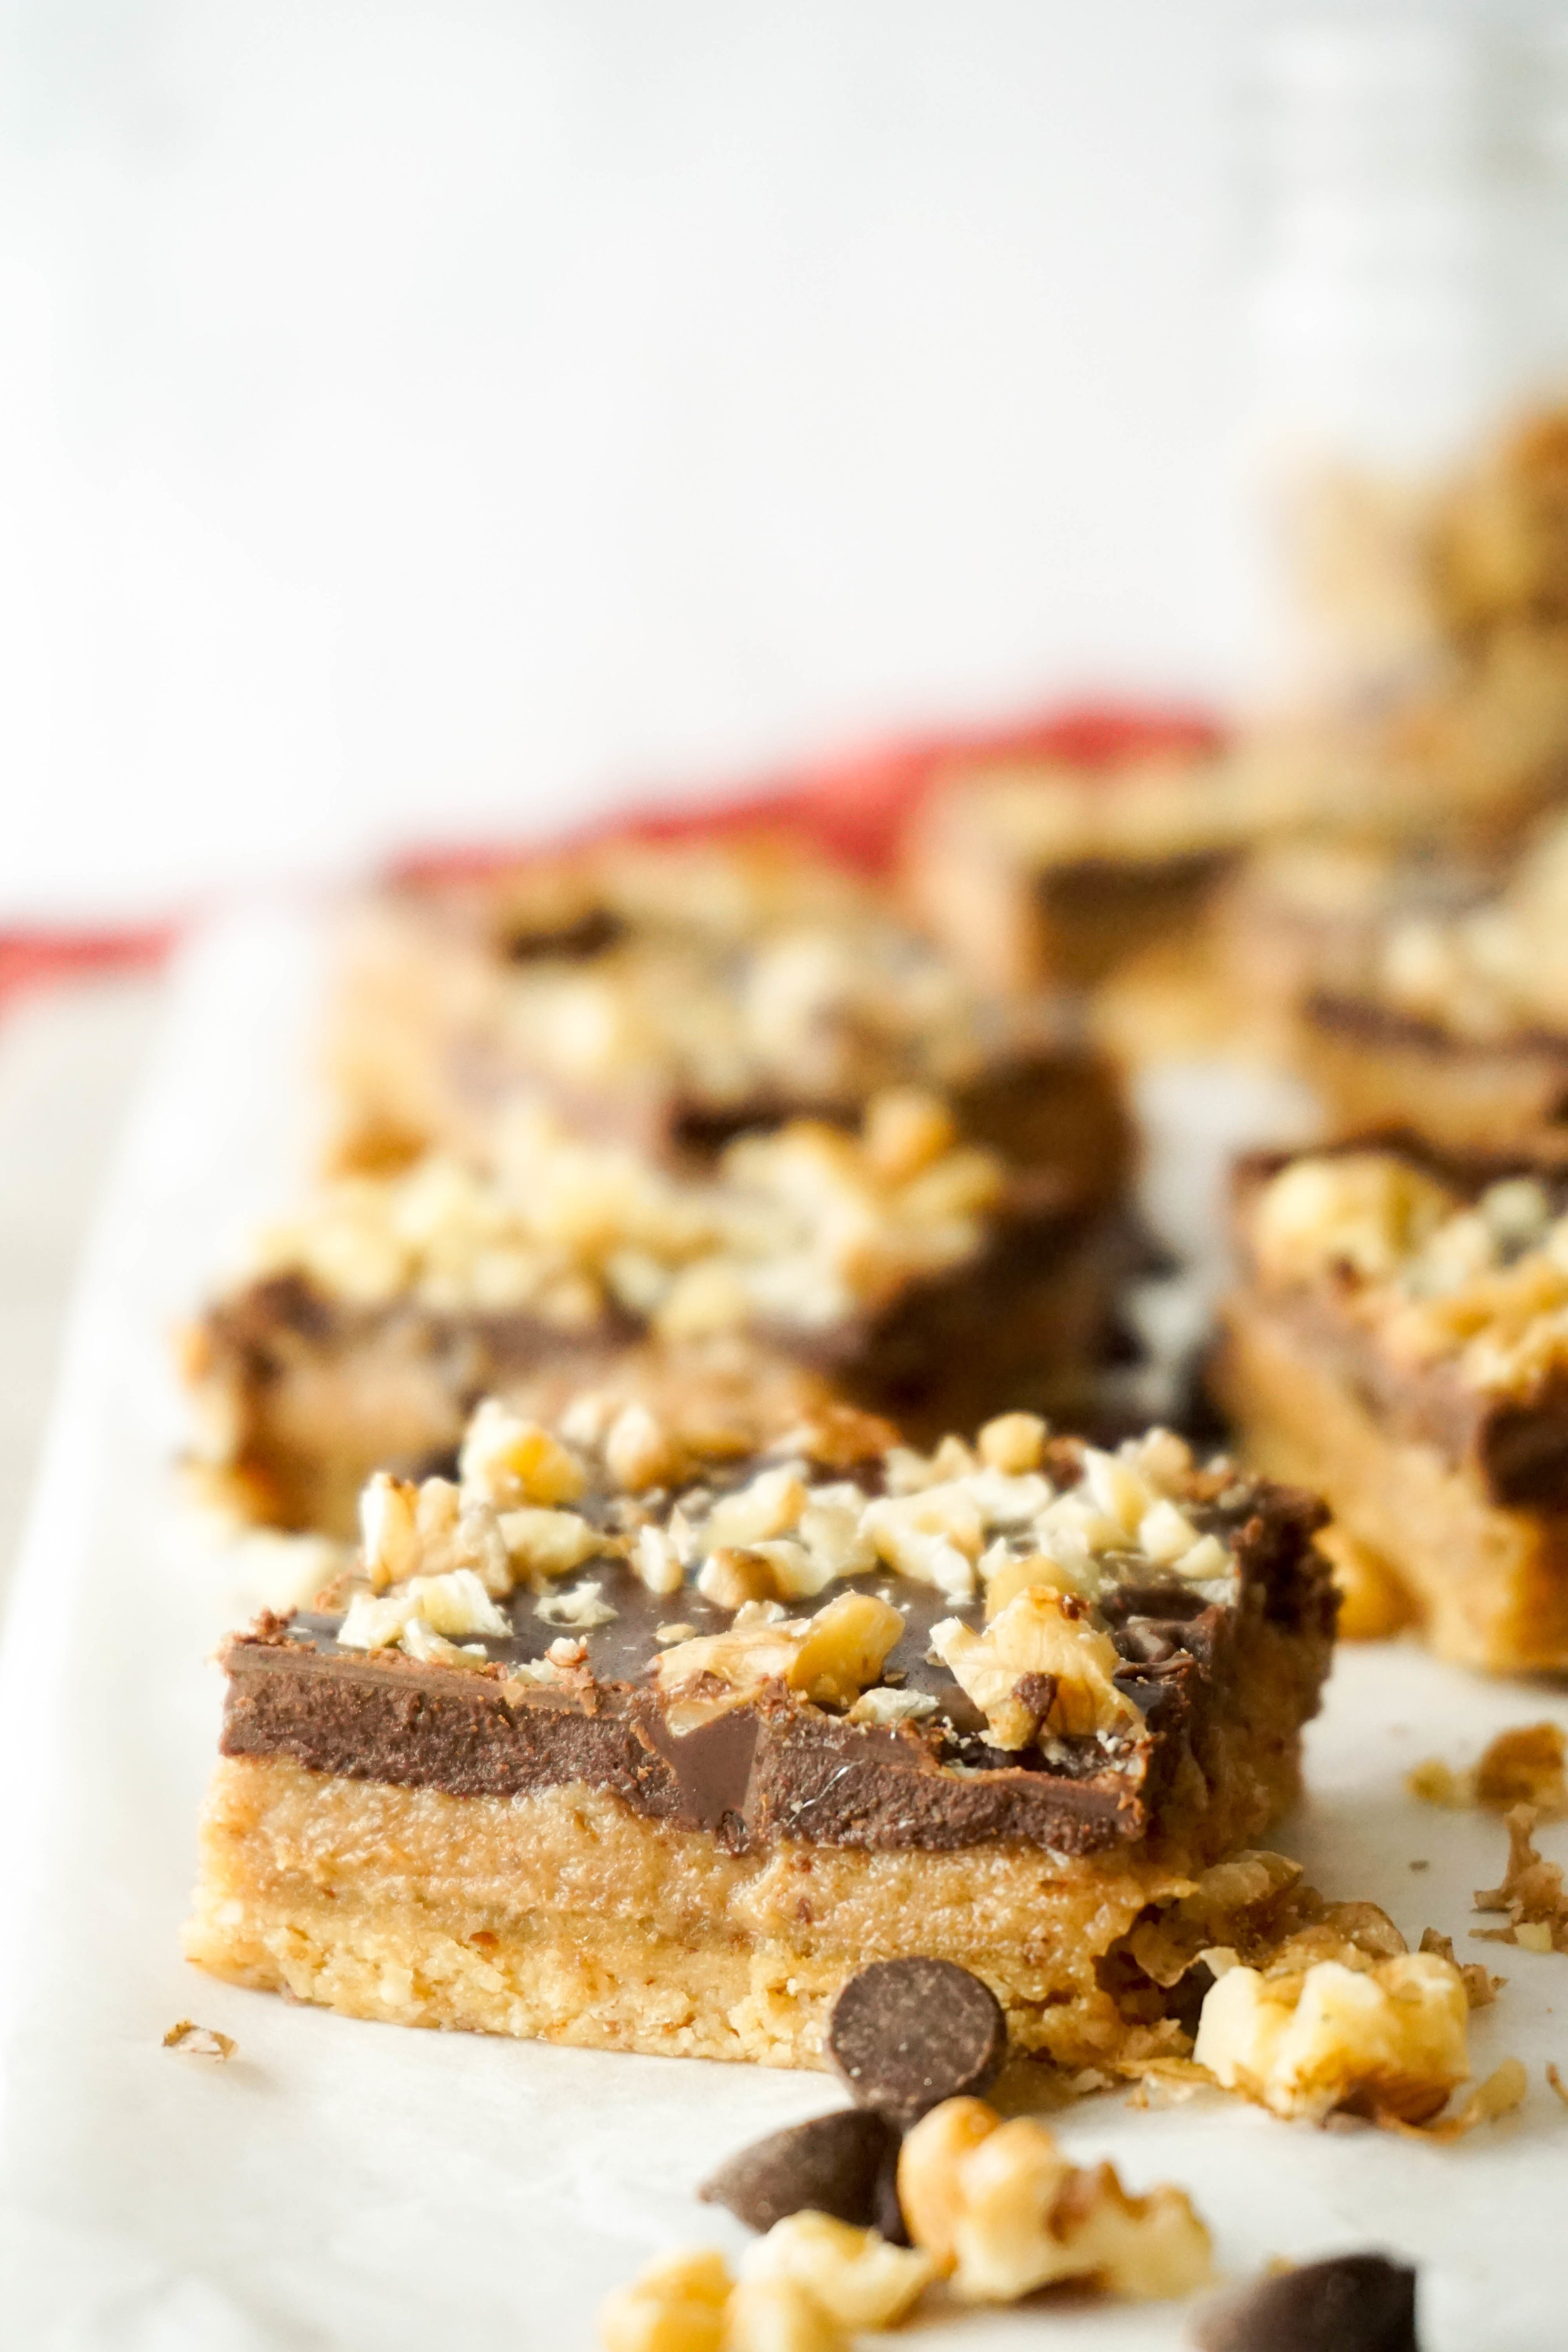 Salted Tahini Caramel Walnut Bars (GF, V)